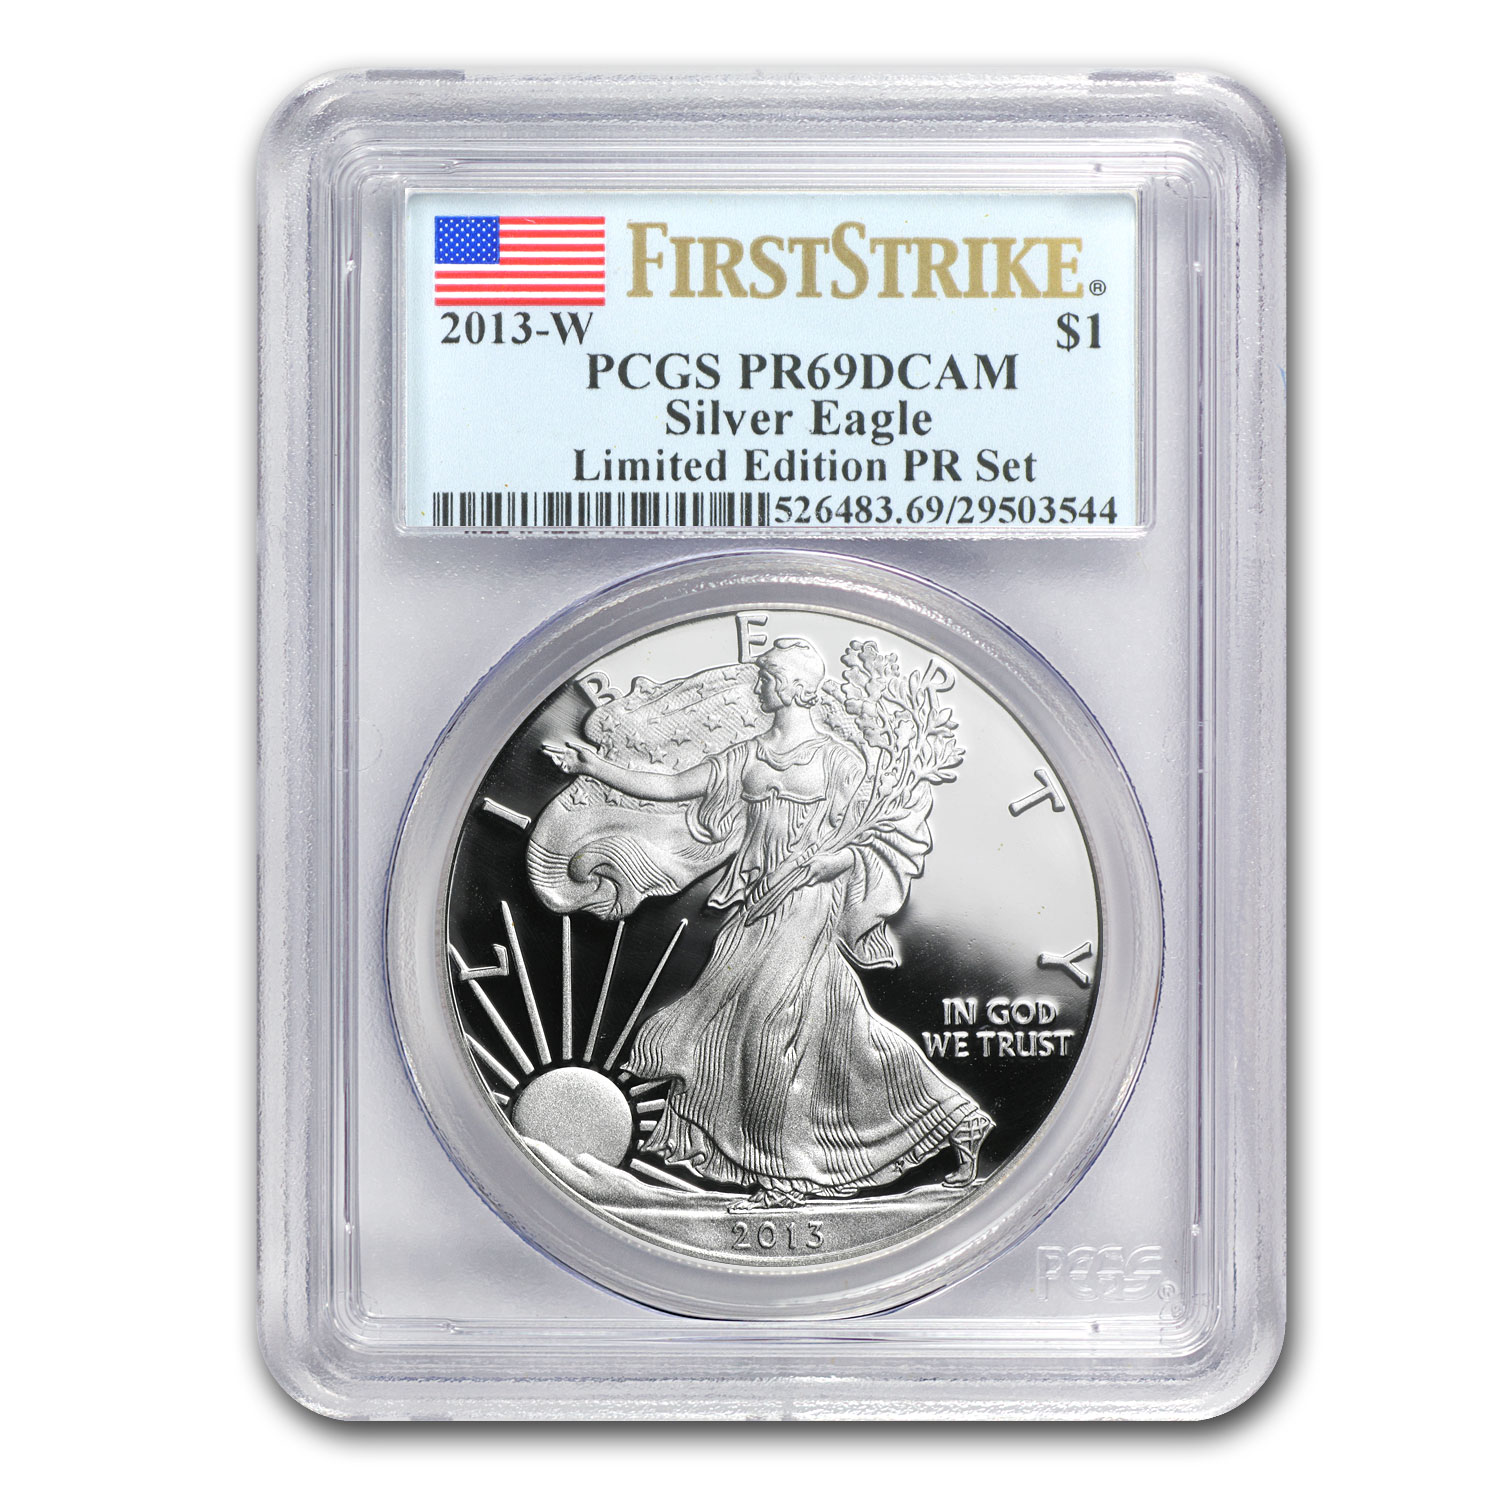 2013 8-Pc Proof Silver Eagle Limited Edition Set PR-69 PCGS (FS)